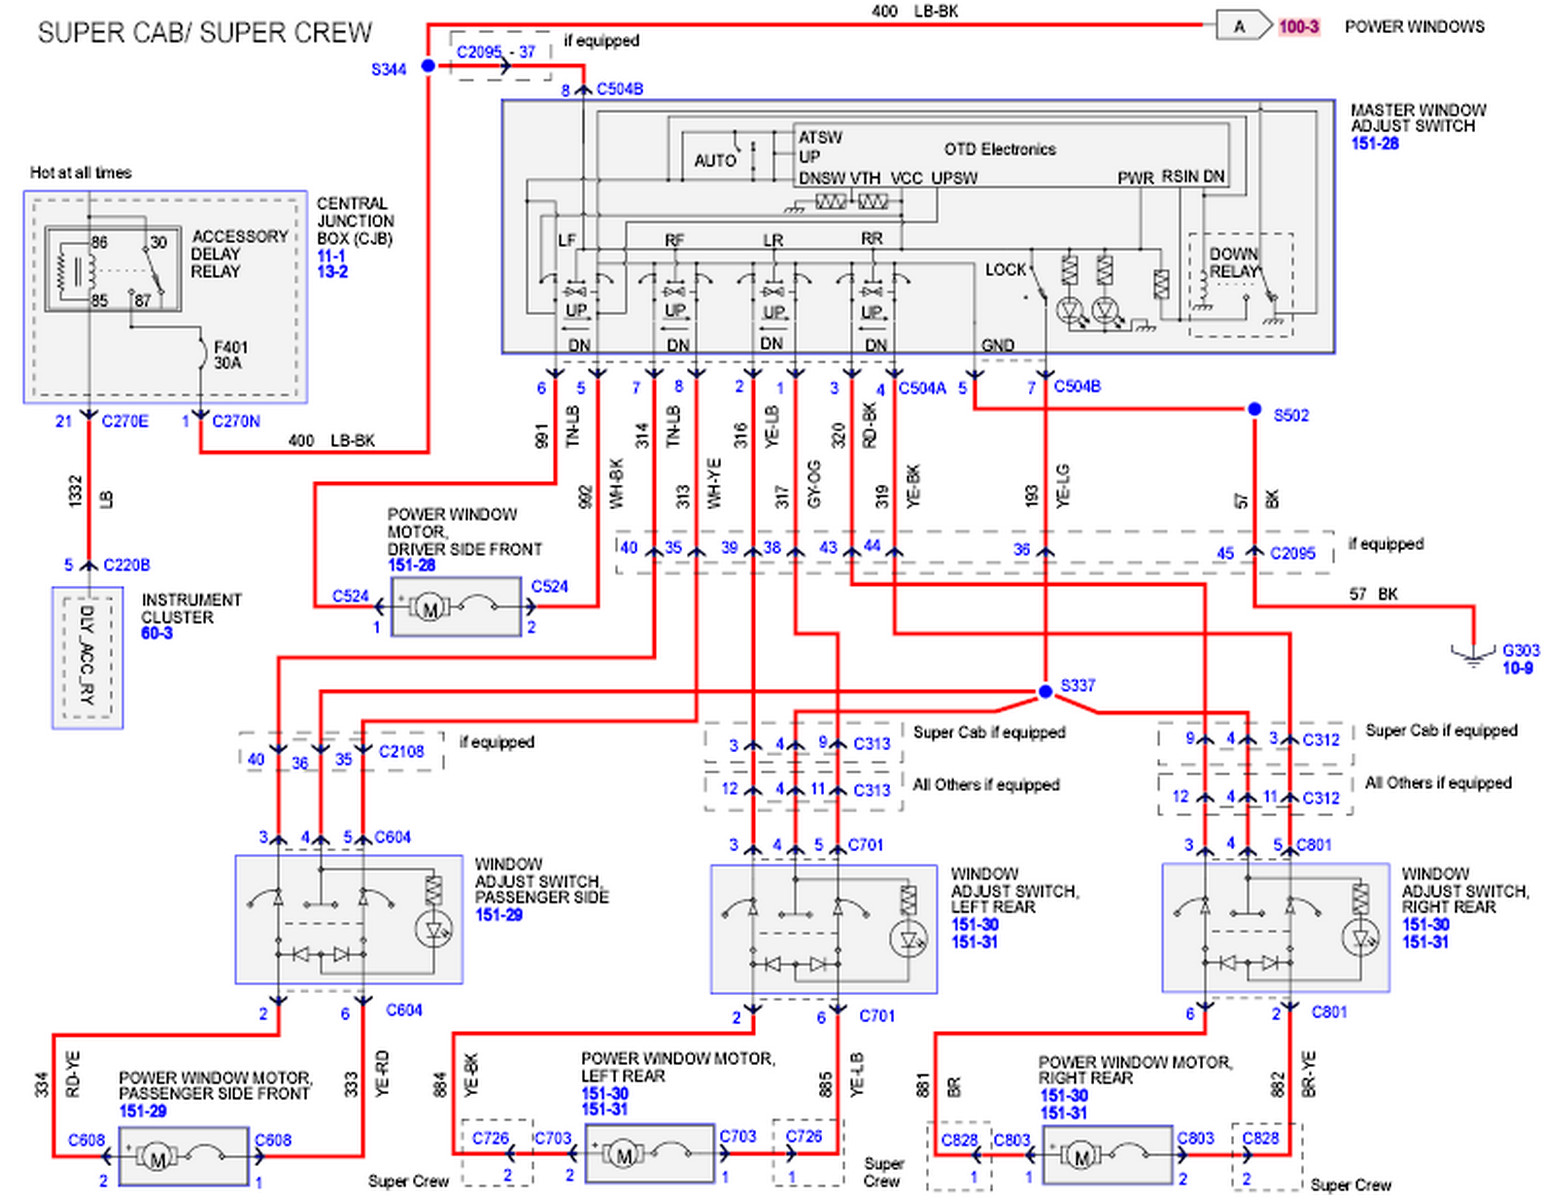 small resolution of ford power window diagram best wiring diagram 99 ford f 150 power window wiring diagram